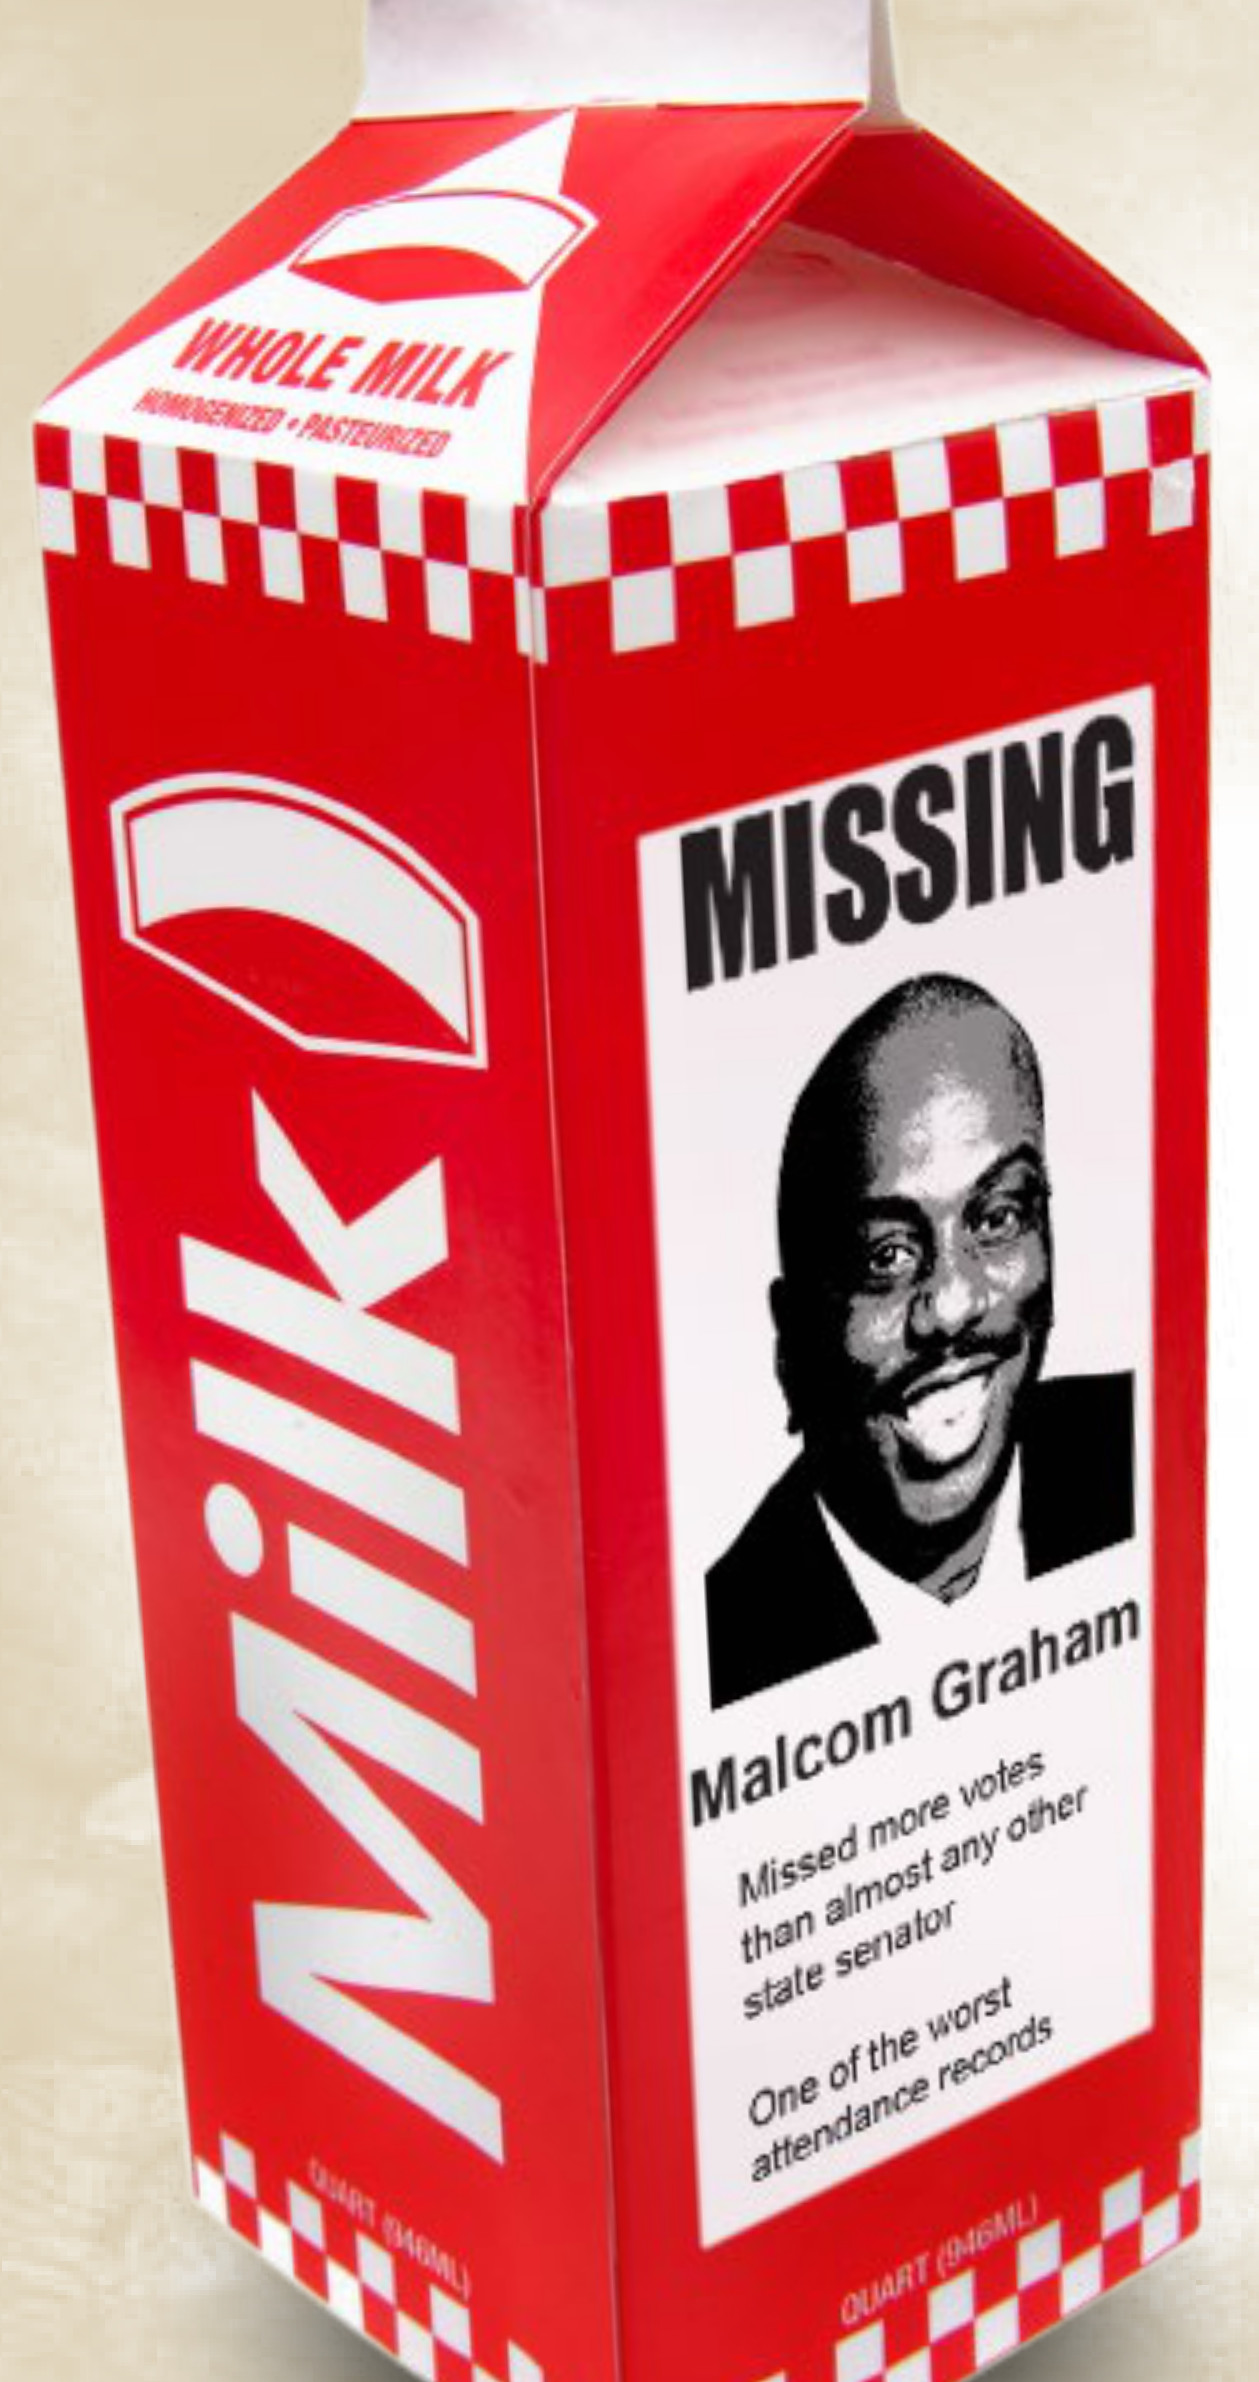 Malcolm Graham is Missing